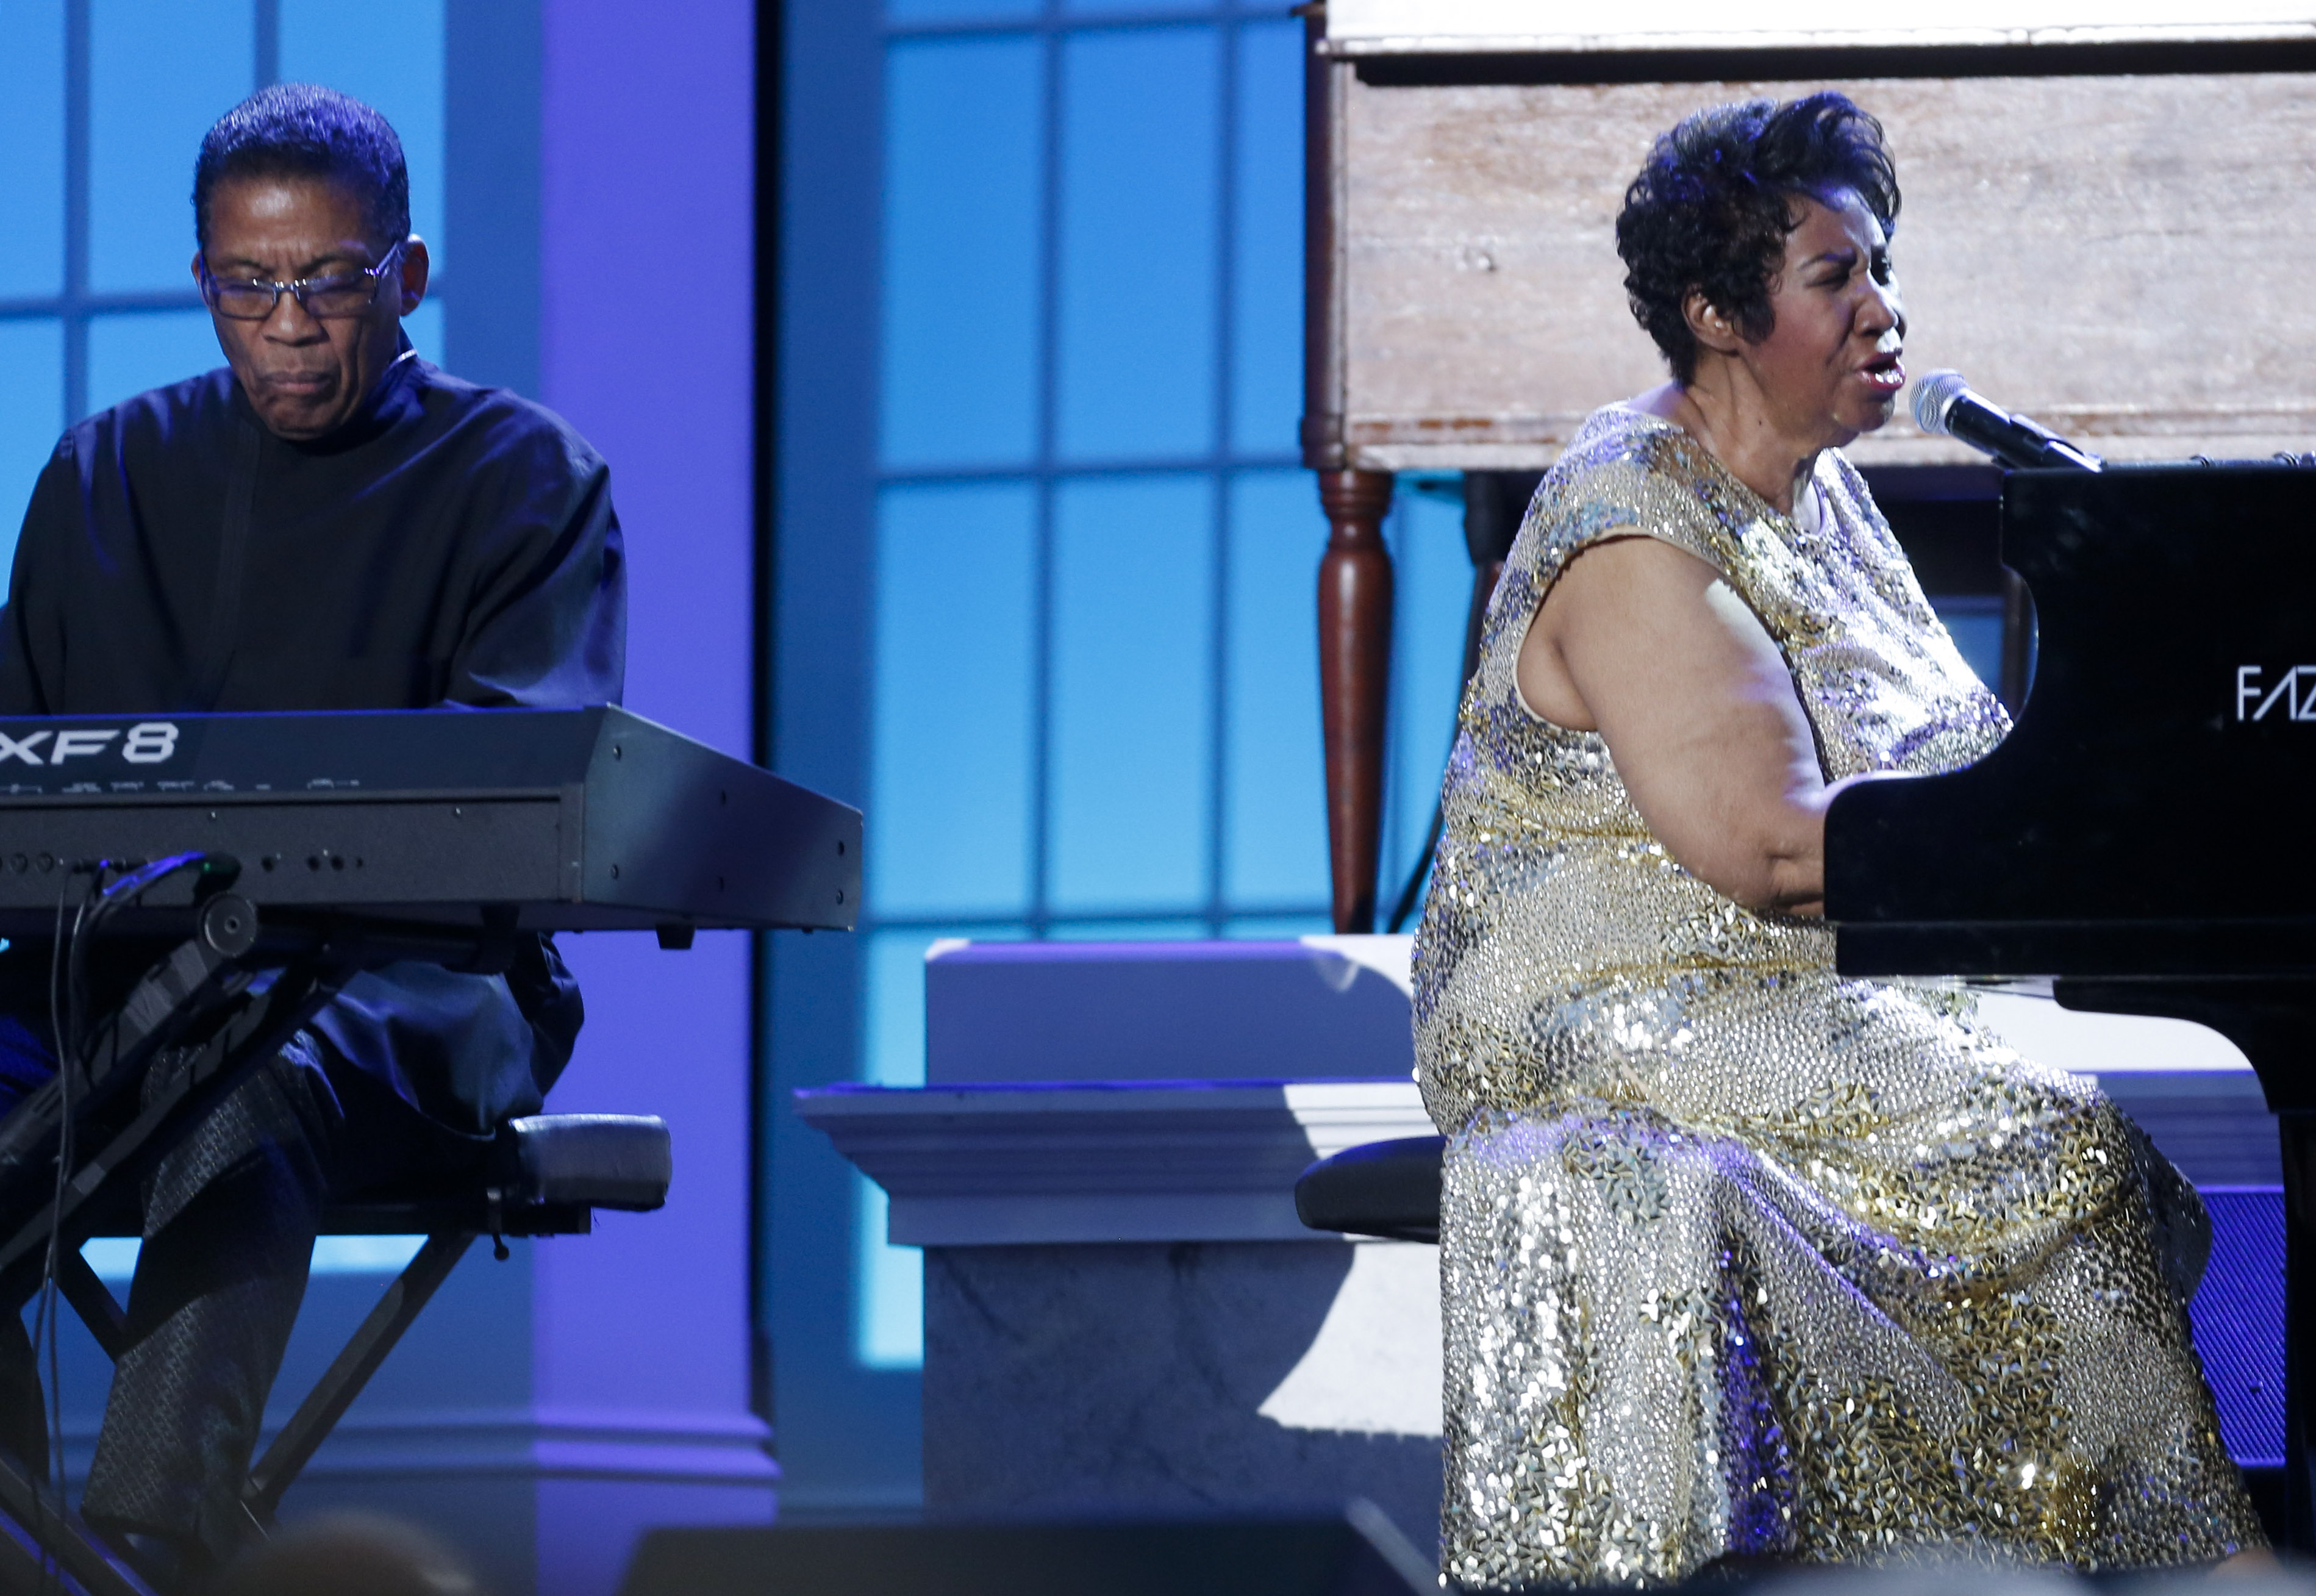 WASHINGTON, DC - APRIL 29: Aretha Franklin and Herbie Hancock perform at the International Jazz Day Concert on the South Lawn of the White House on April 29, 2016 in Washington, DC. The event was presented by actor Morgan Freeman and included remarks by President Obama. (Photo by Aude Guerrucci-Pool/Getty Images)